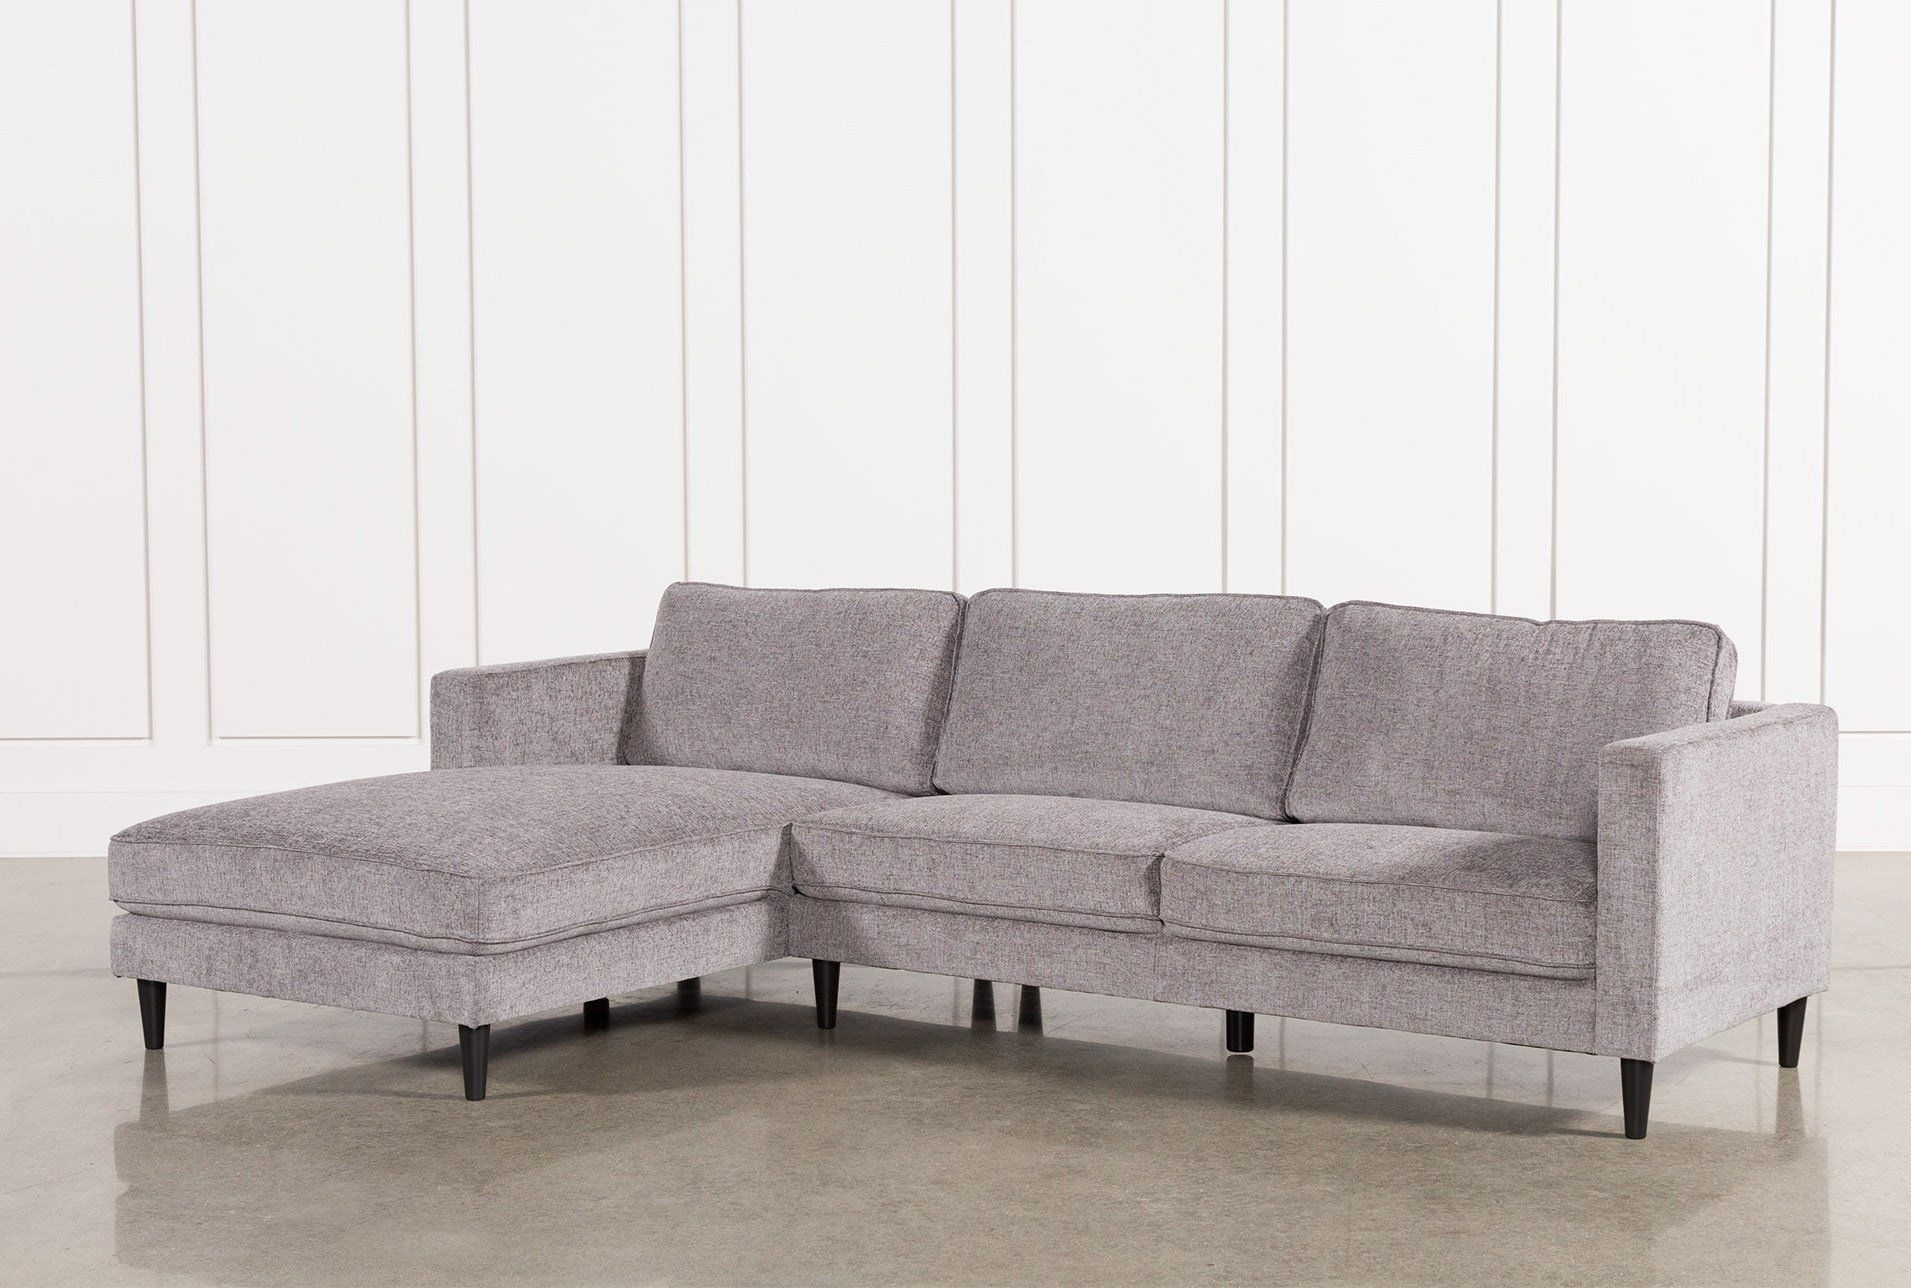 Cosmos Grey 2 Piece Sectional W/laf Chaise | Couches | Pinterest pertaining to Avery 2 Piece Sectionals With Laf Armless Chaise (Image 7 of 30)